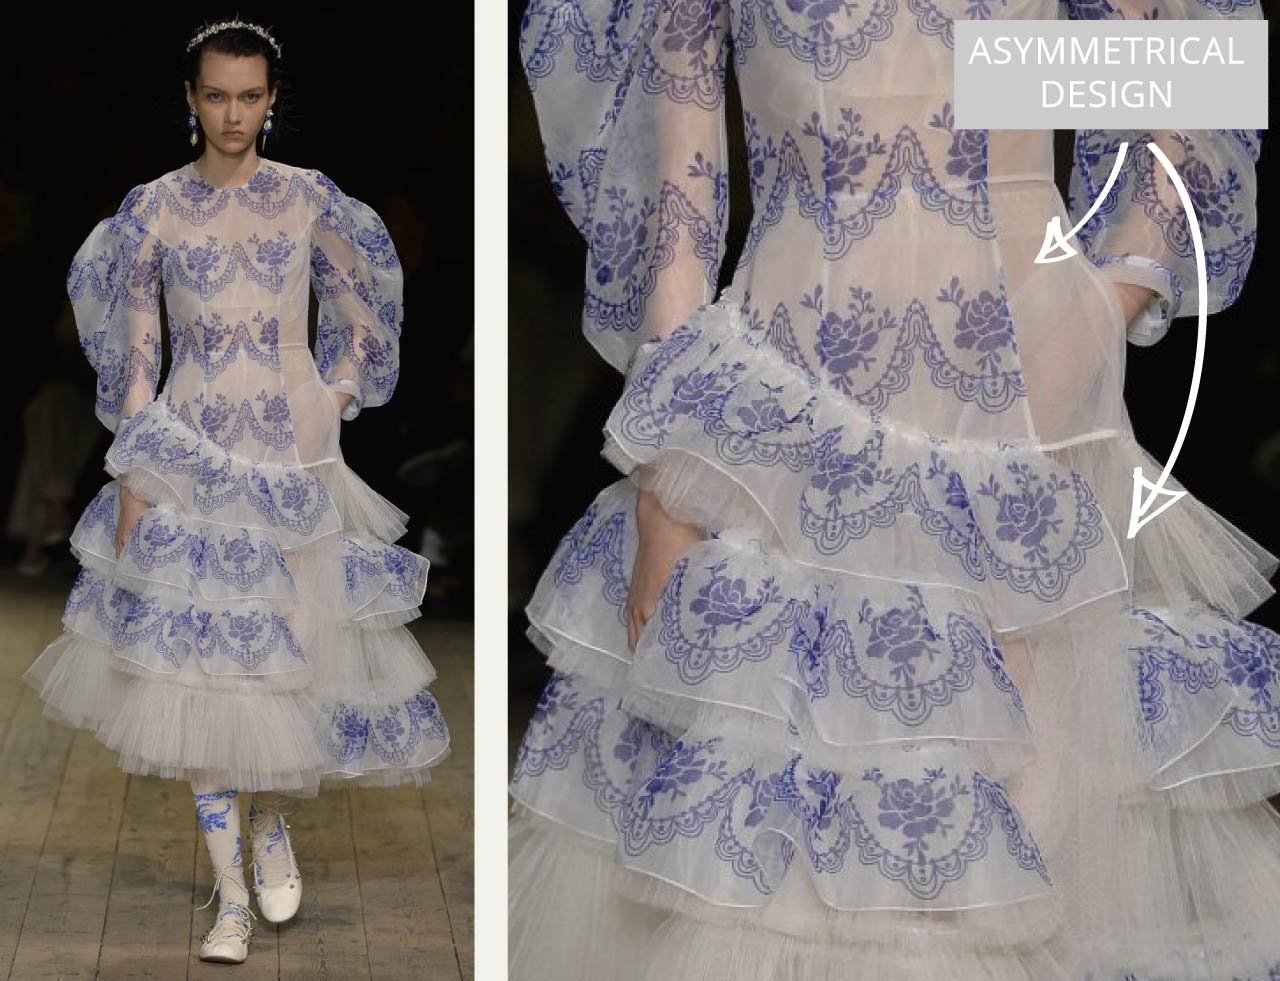 Translucent Layers at Simone Rocha | The Cutting Class. Blue and white dress with asymmetrical layered design.